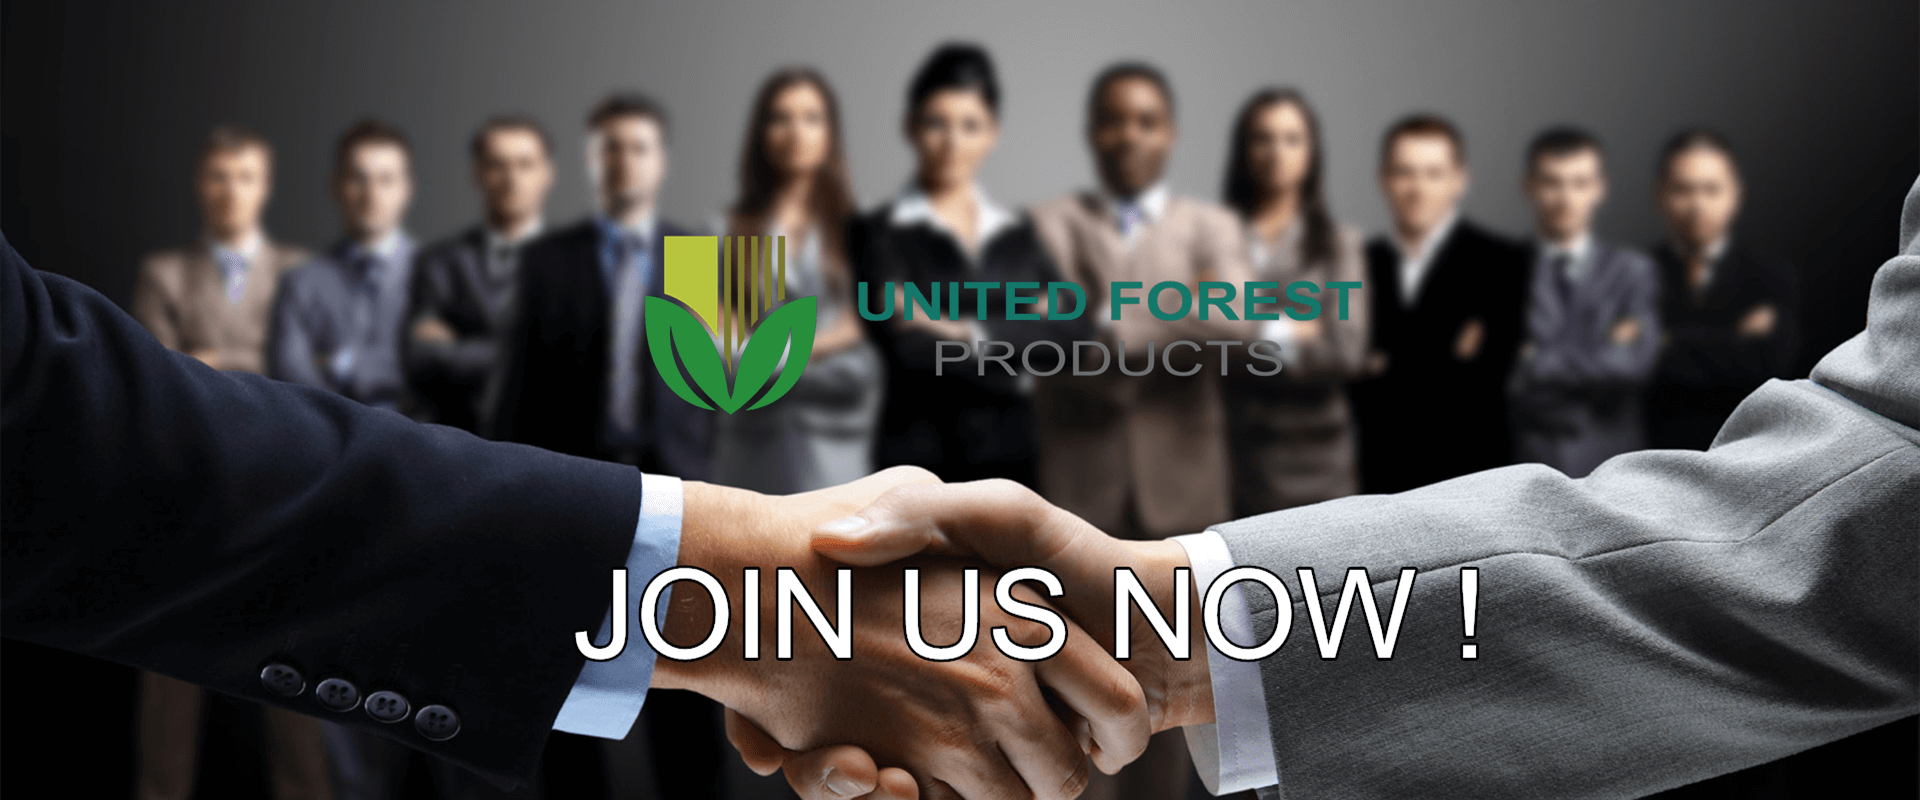 JOIN US-RECRUITMENT INFORMATION-SALES REPRESENTATIVE